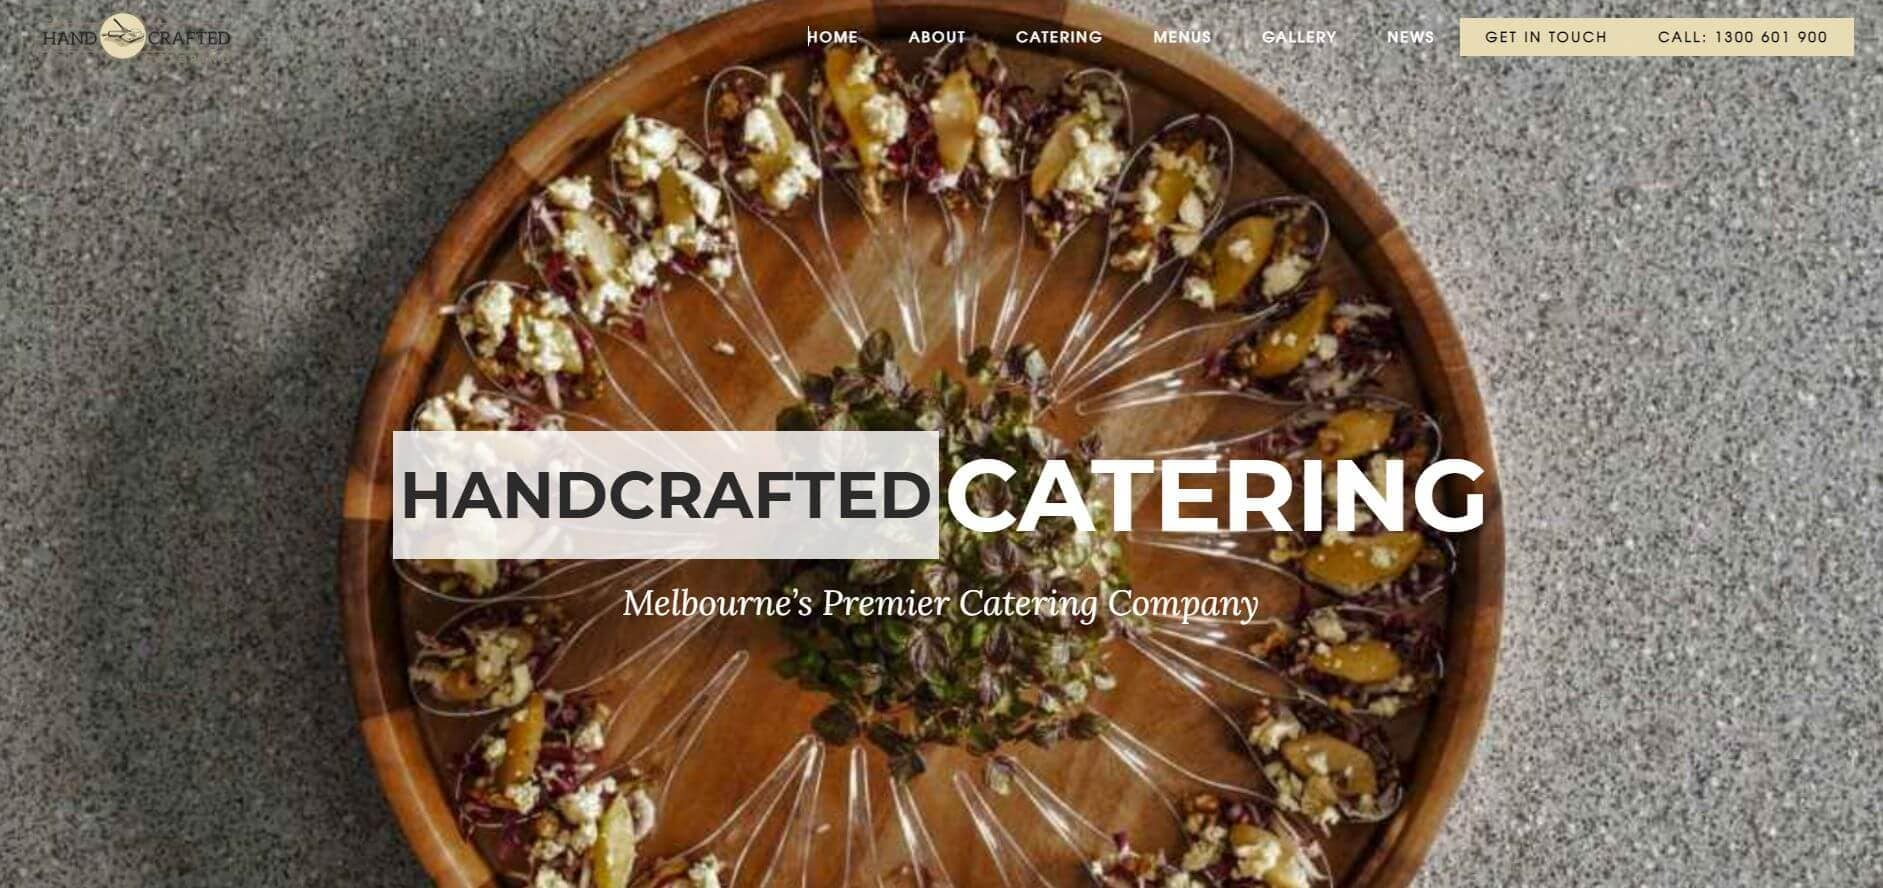 handcrafted catering